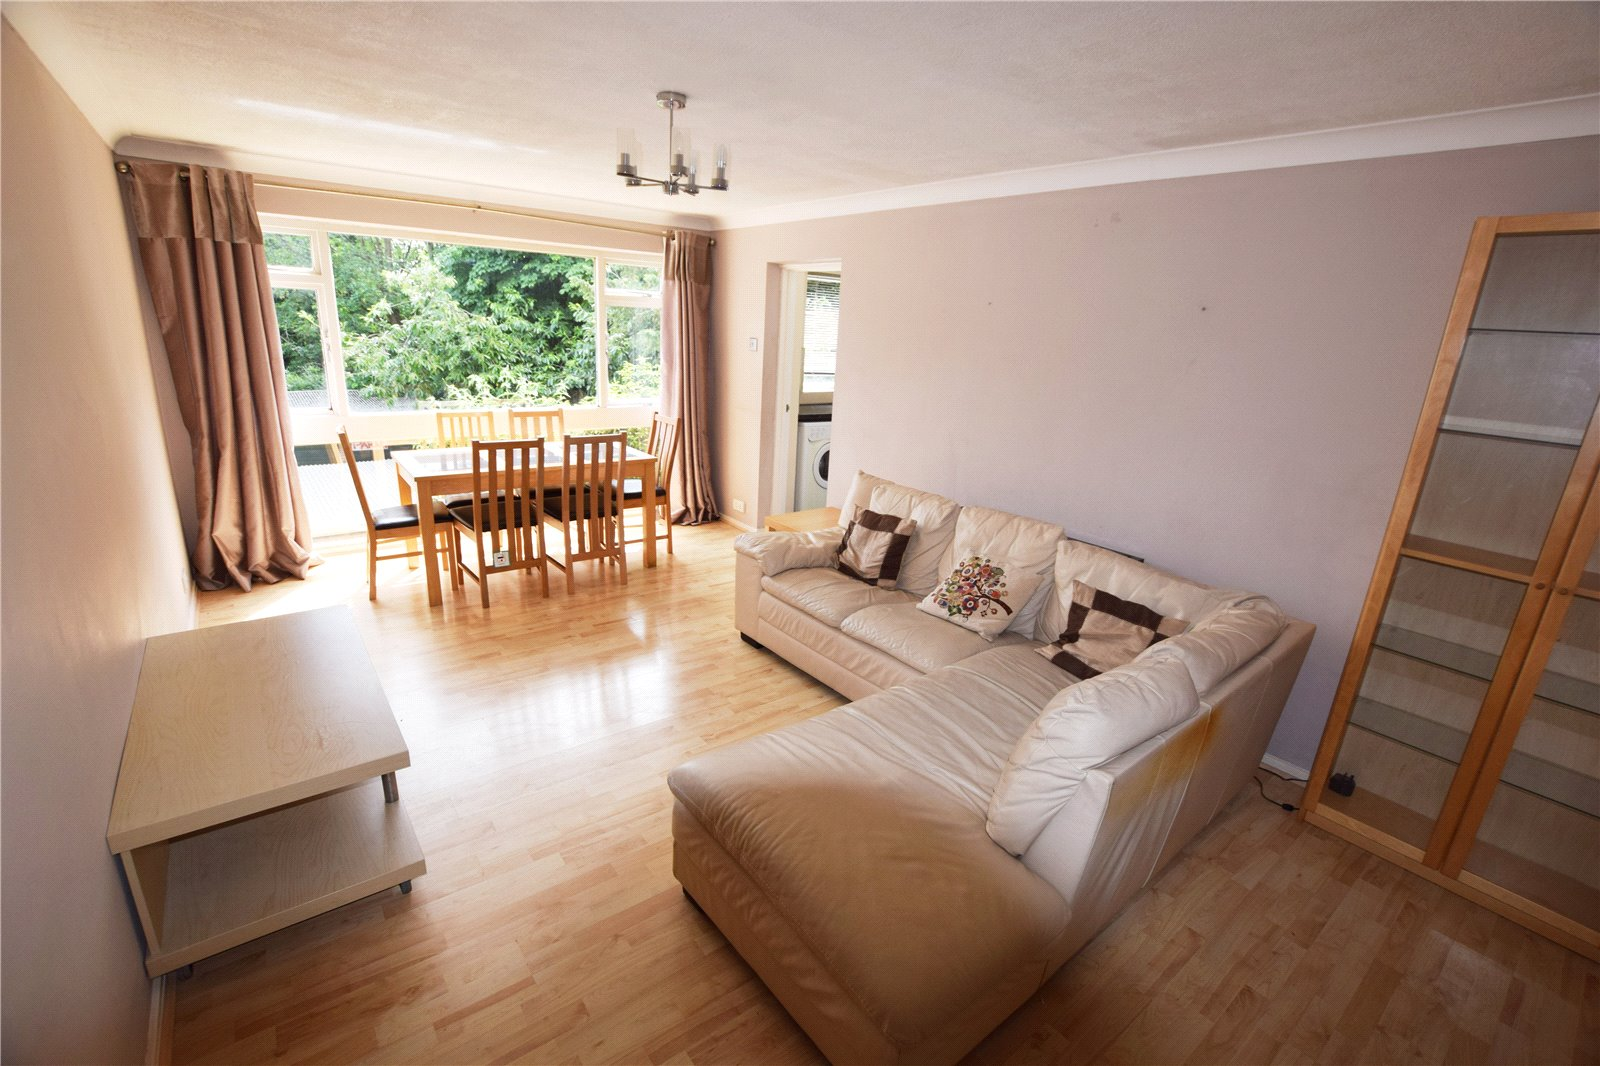 2 Bedrooms Apartment Flat for sale in Lesley Court, Southcote Road, Reading, Berkshire, RG30